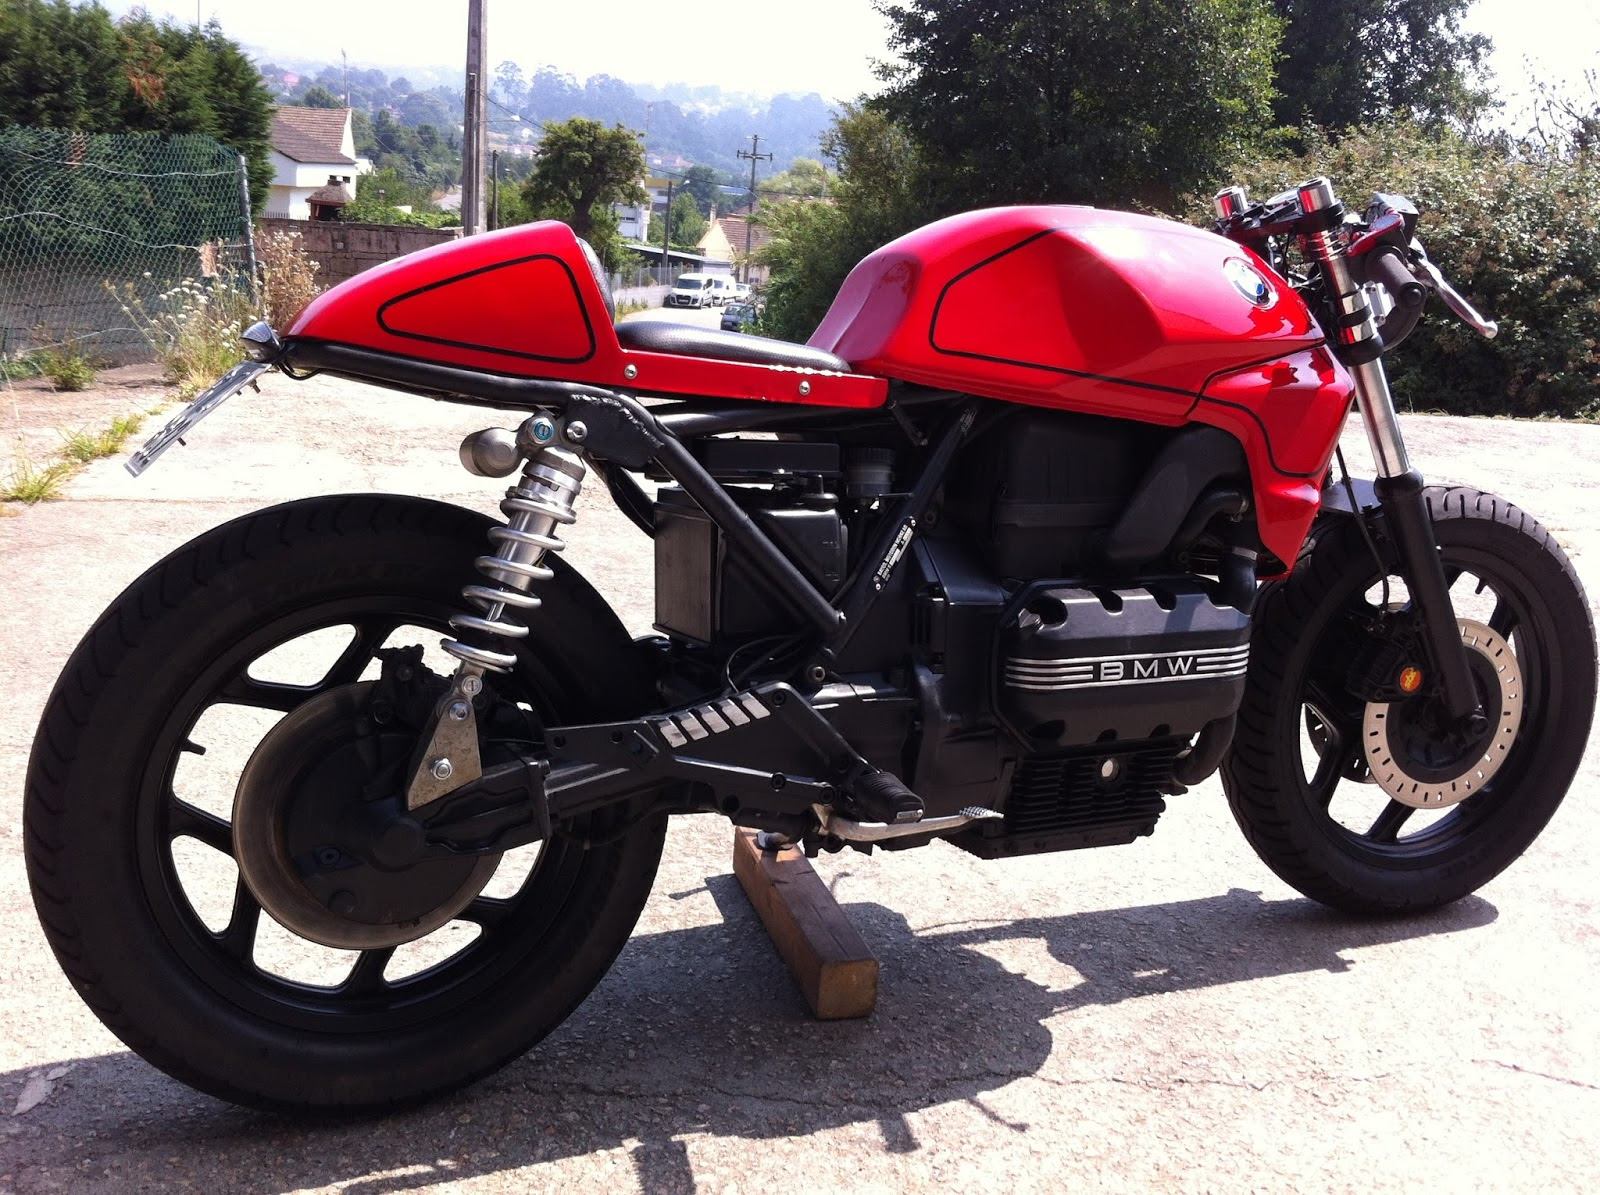 Tarmac Bmw K75 Shows That Less Can Be So Much More Autoevolution